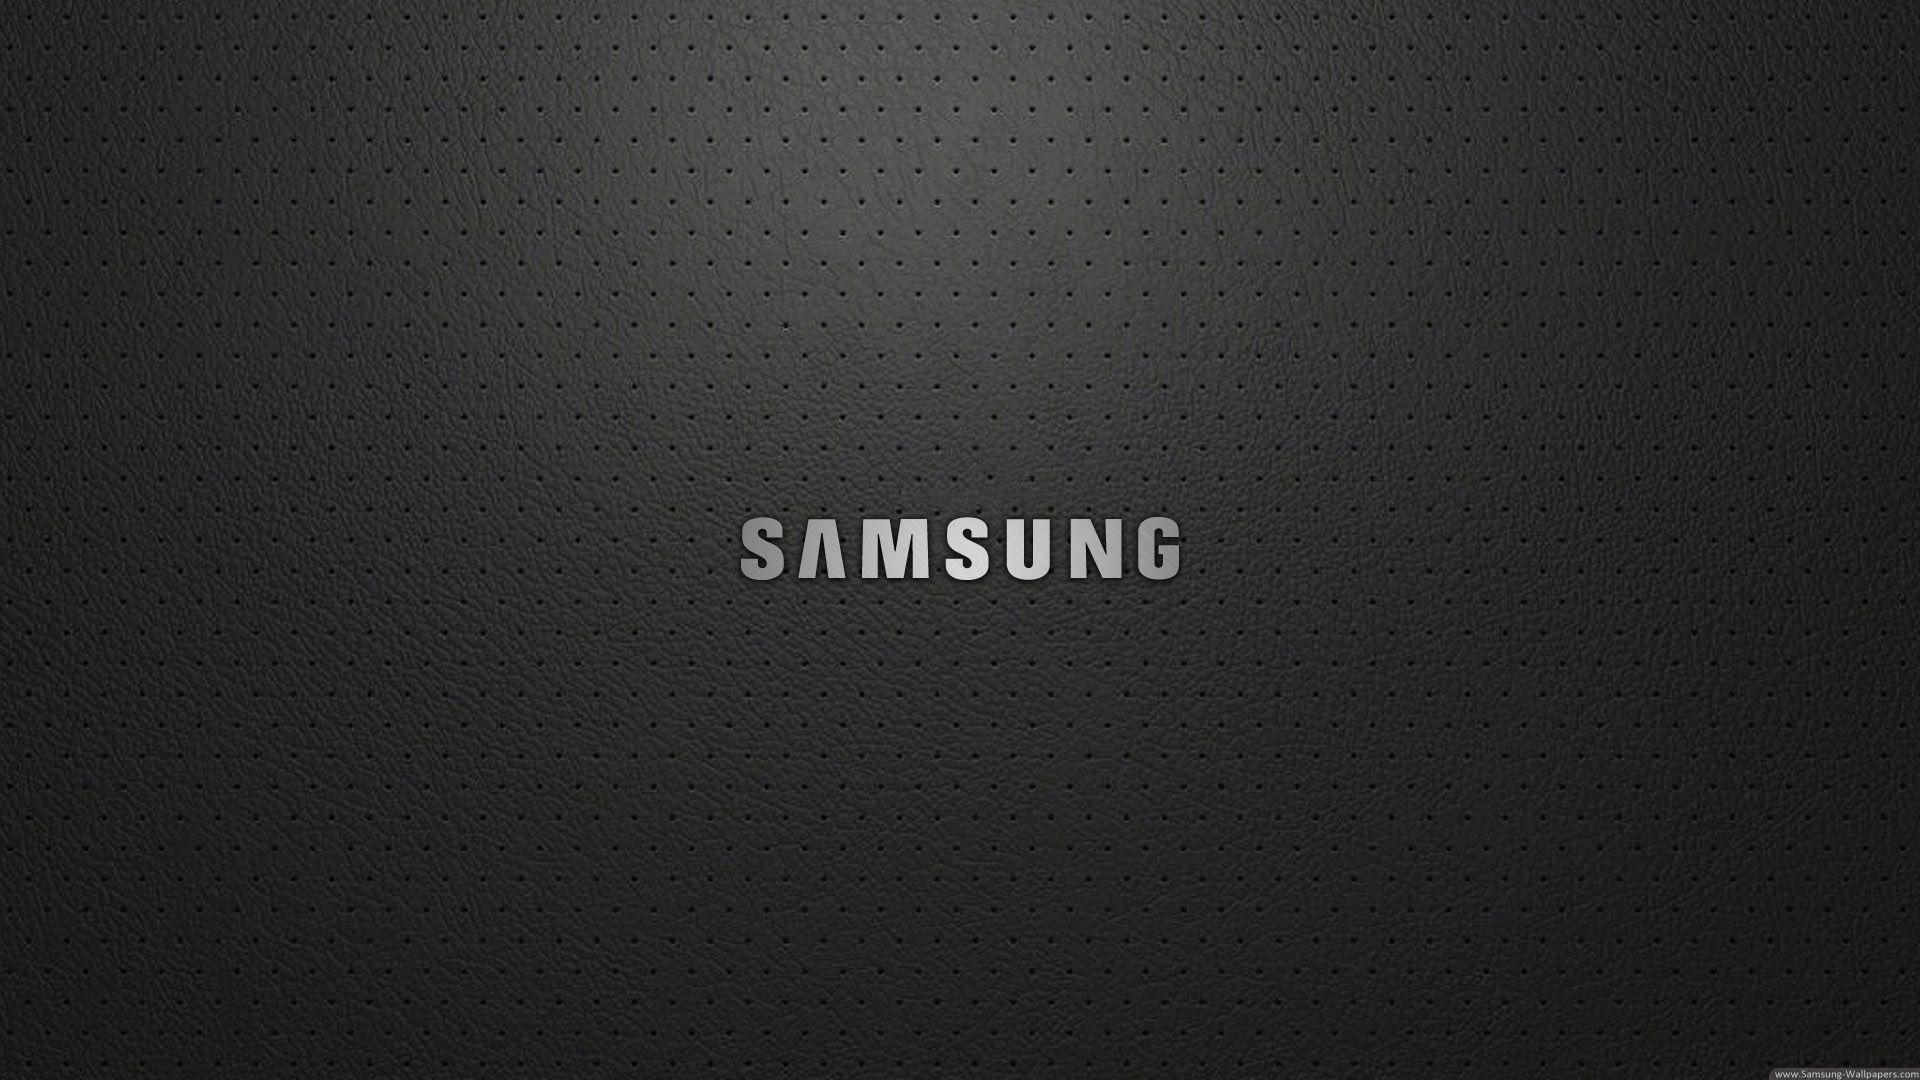 Samsung logo wallpapers wallpaper cave wallpapers logo samsung hd logo backgrounds best desktop voltagebd Images